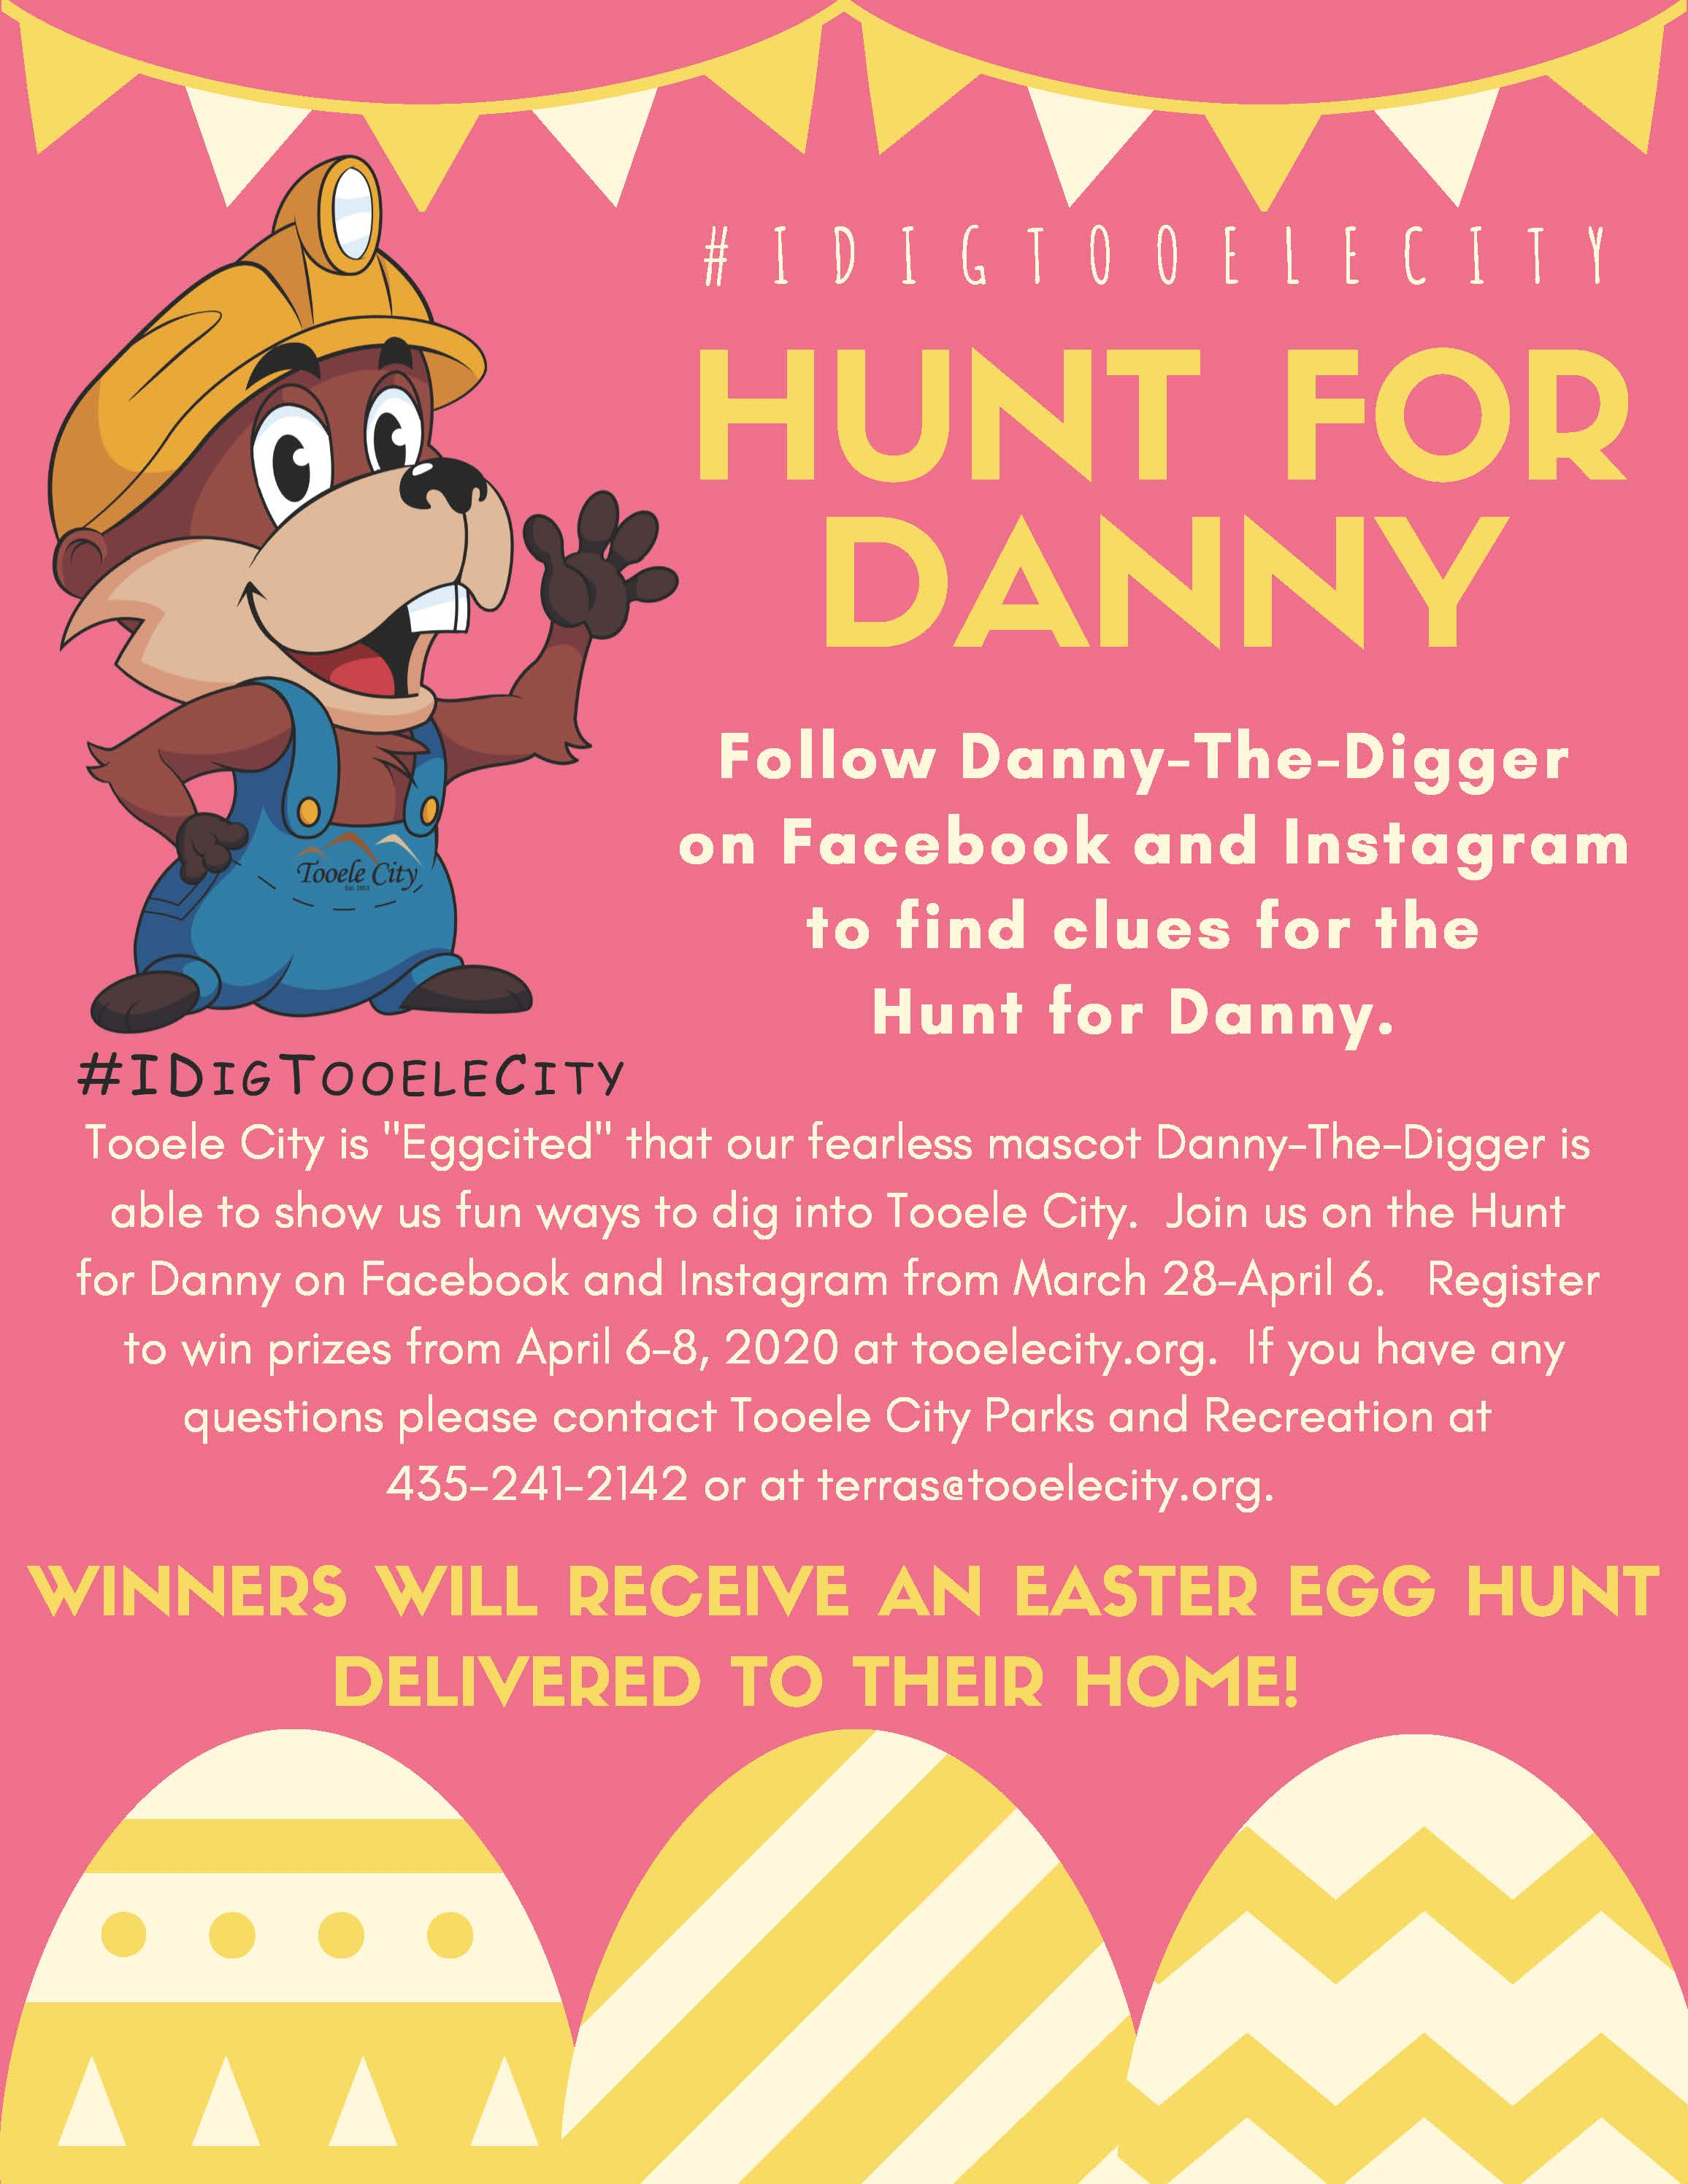 Hunt for Danny - March 28 through April 6, 2020